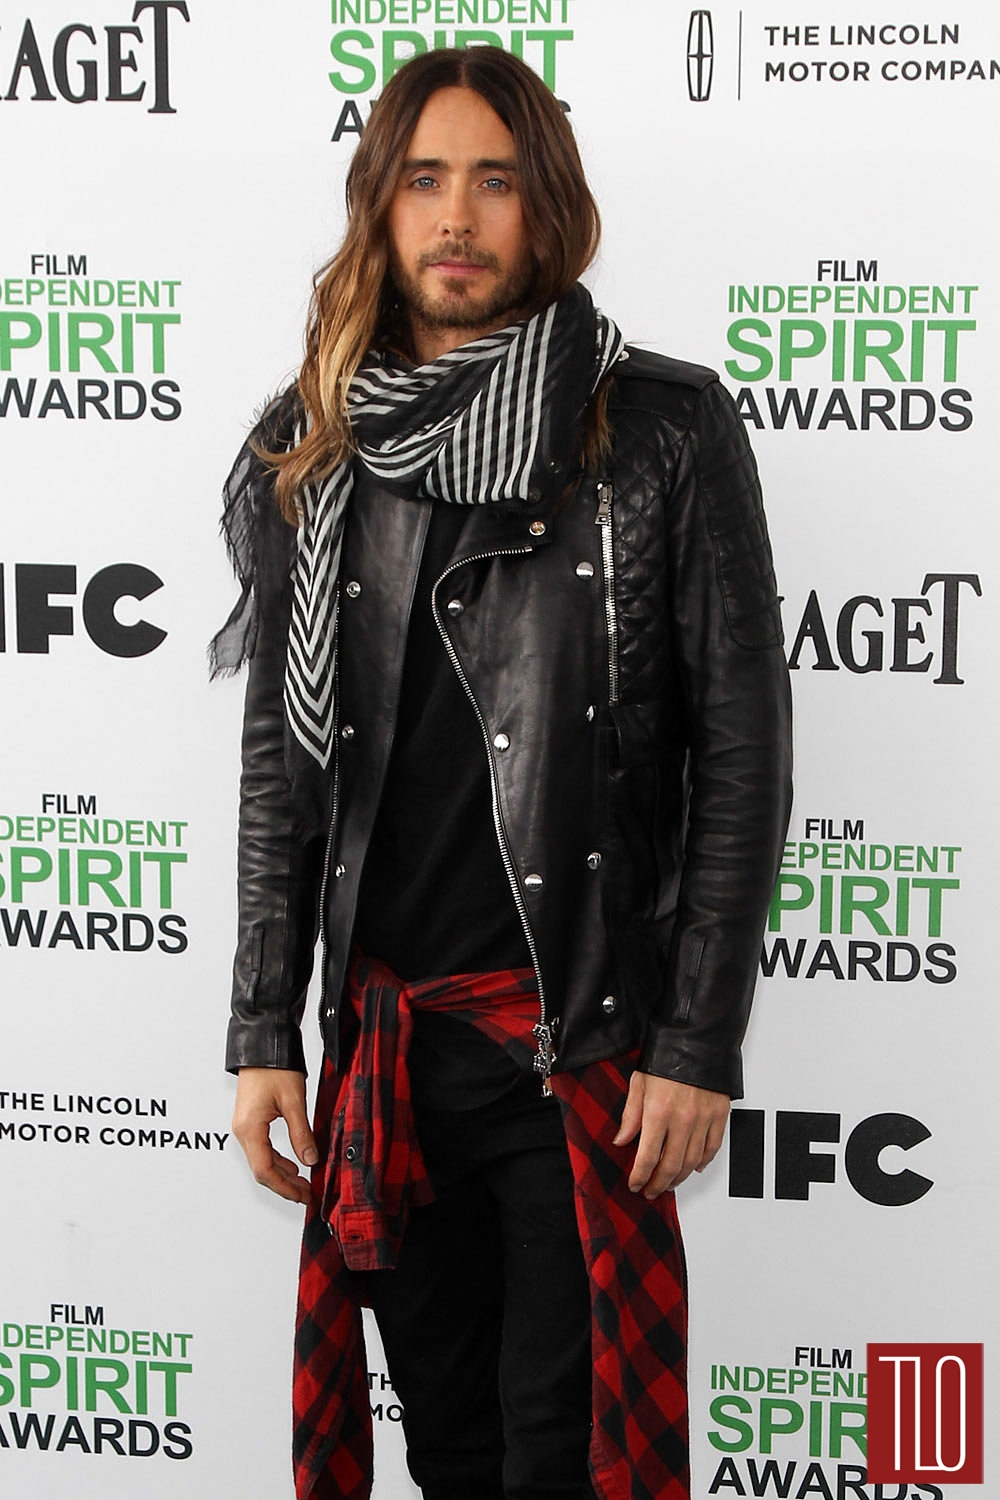 Jared-Leto-Balmain-2014-Film-Independent-Spirit-Awards-Tom-Lorenzo-Site-TLO (1)